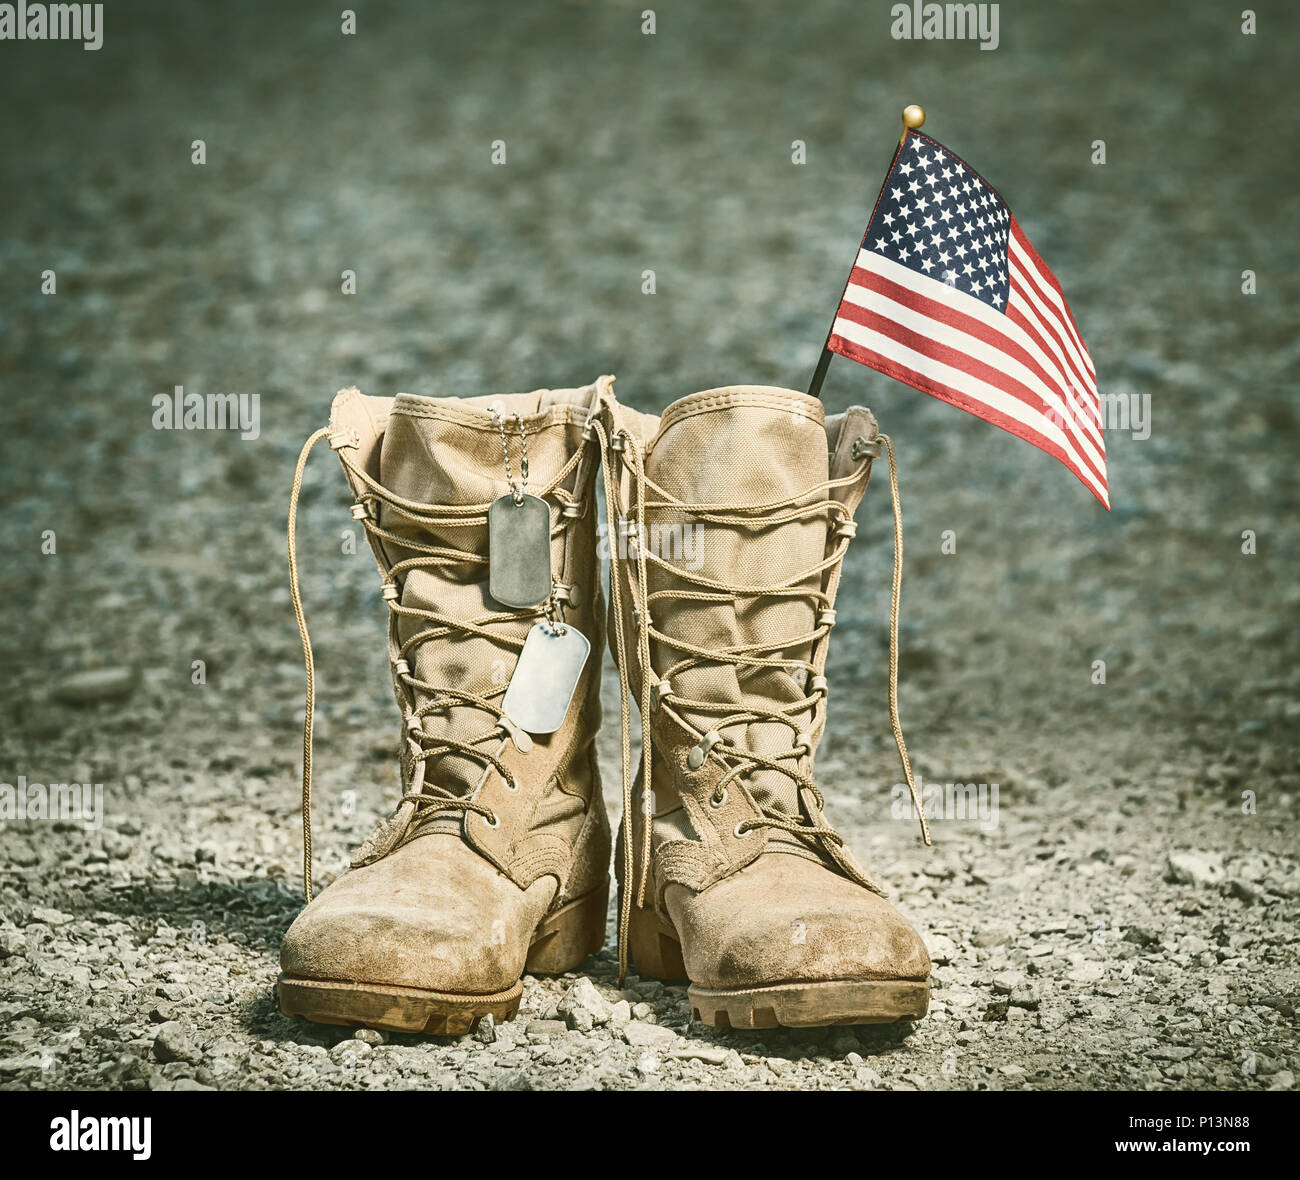 Old Military Combat Boots With The American Flag And Dog Tags Rocky Gravel Background